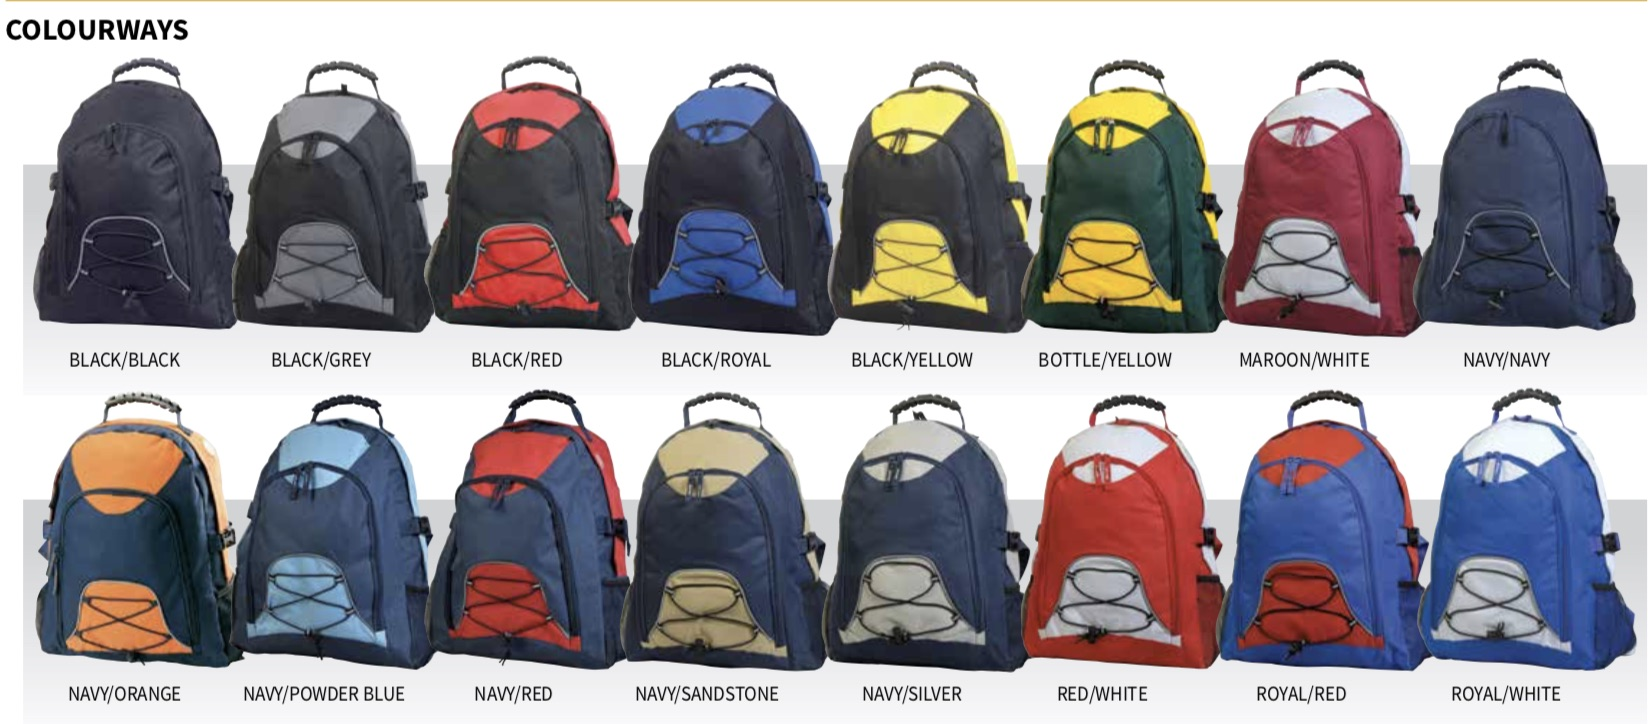 b207-climber-backpack-colours